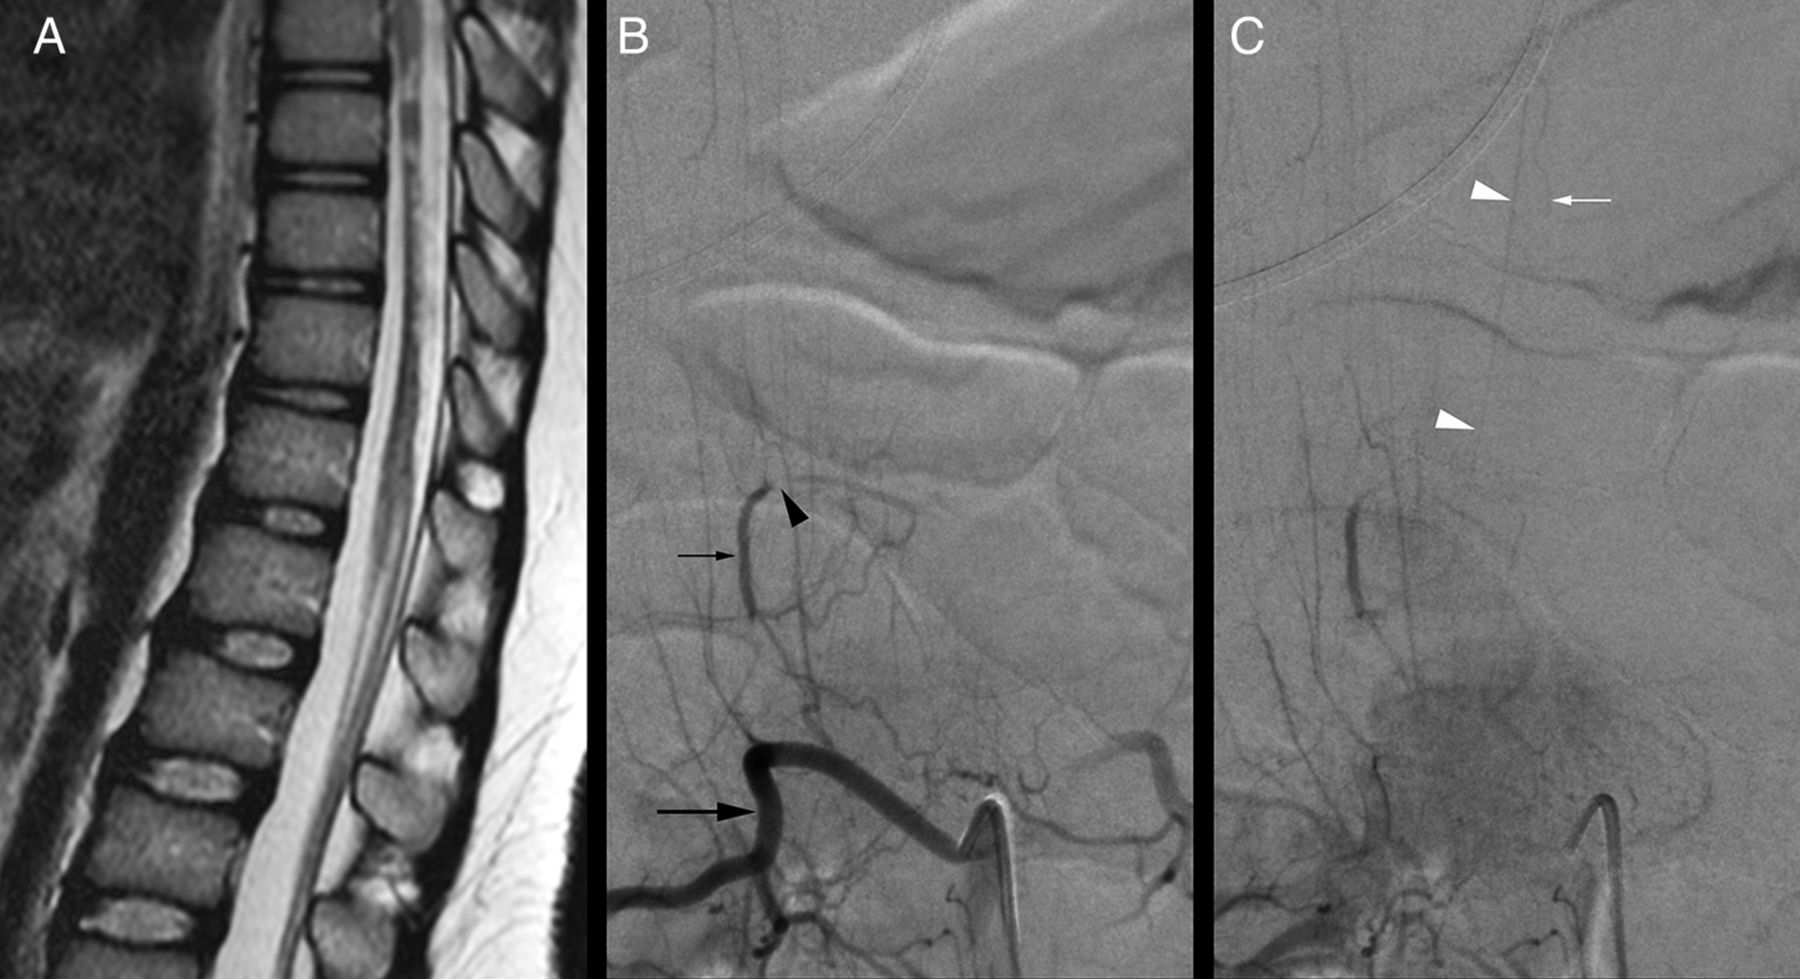 Periconal arterial anastomotic circle and posterior